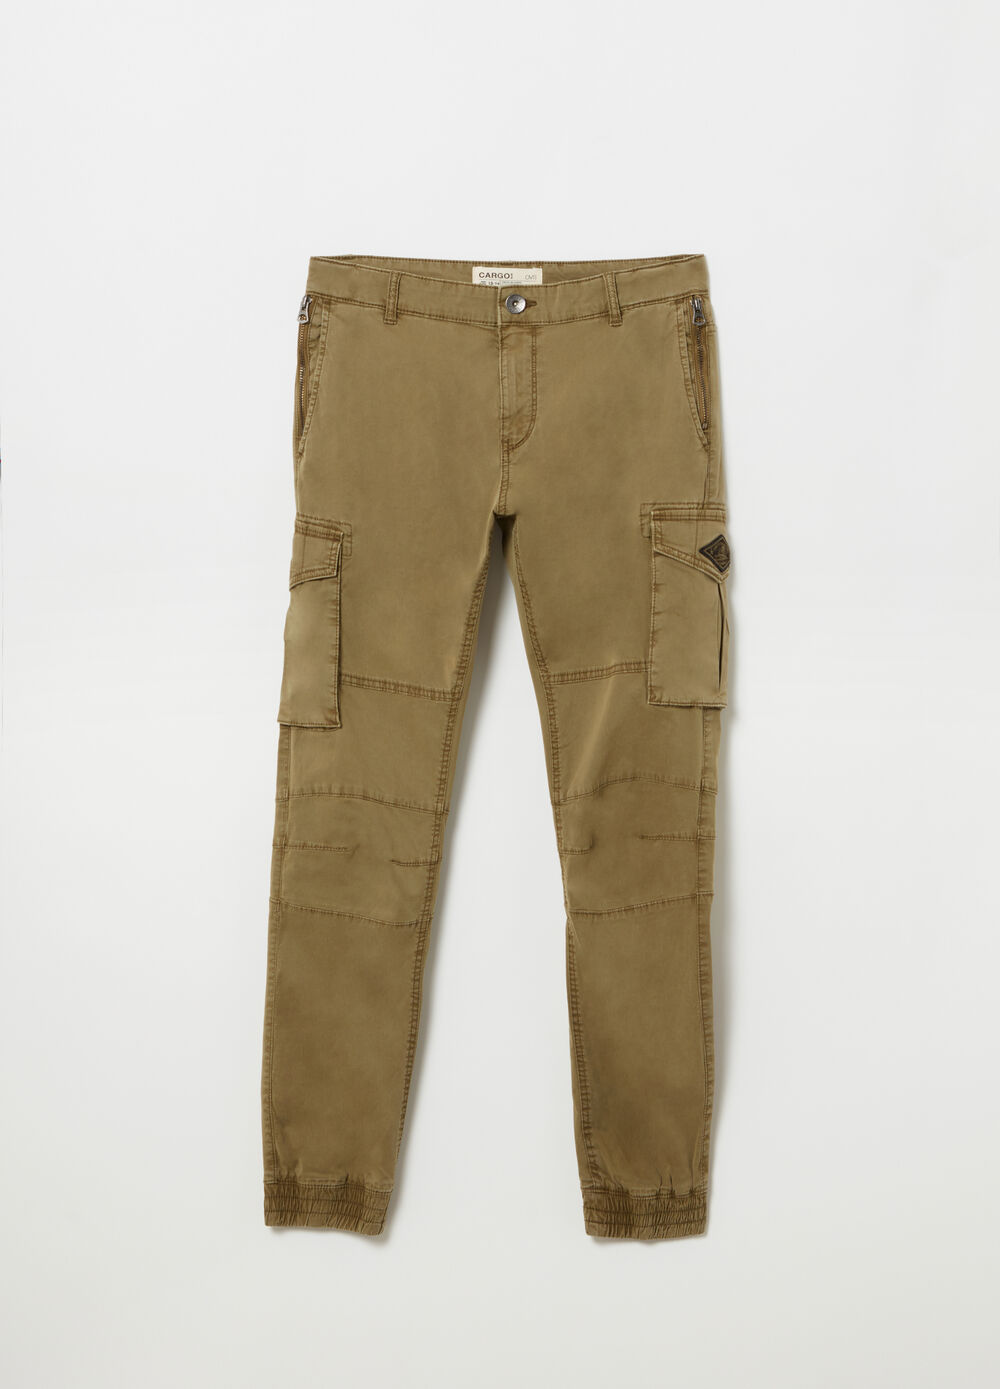 Twill cargo trousers with adjustable waist